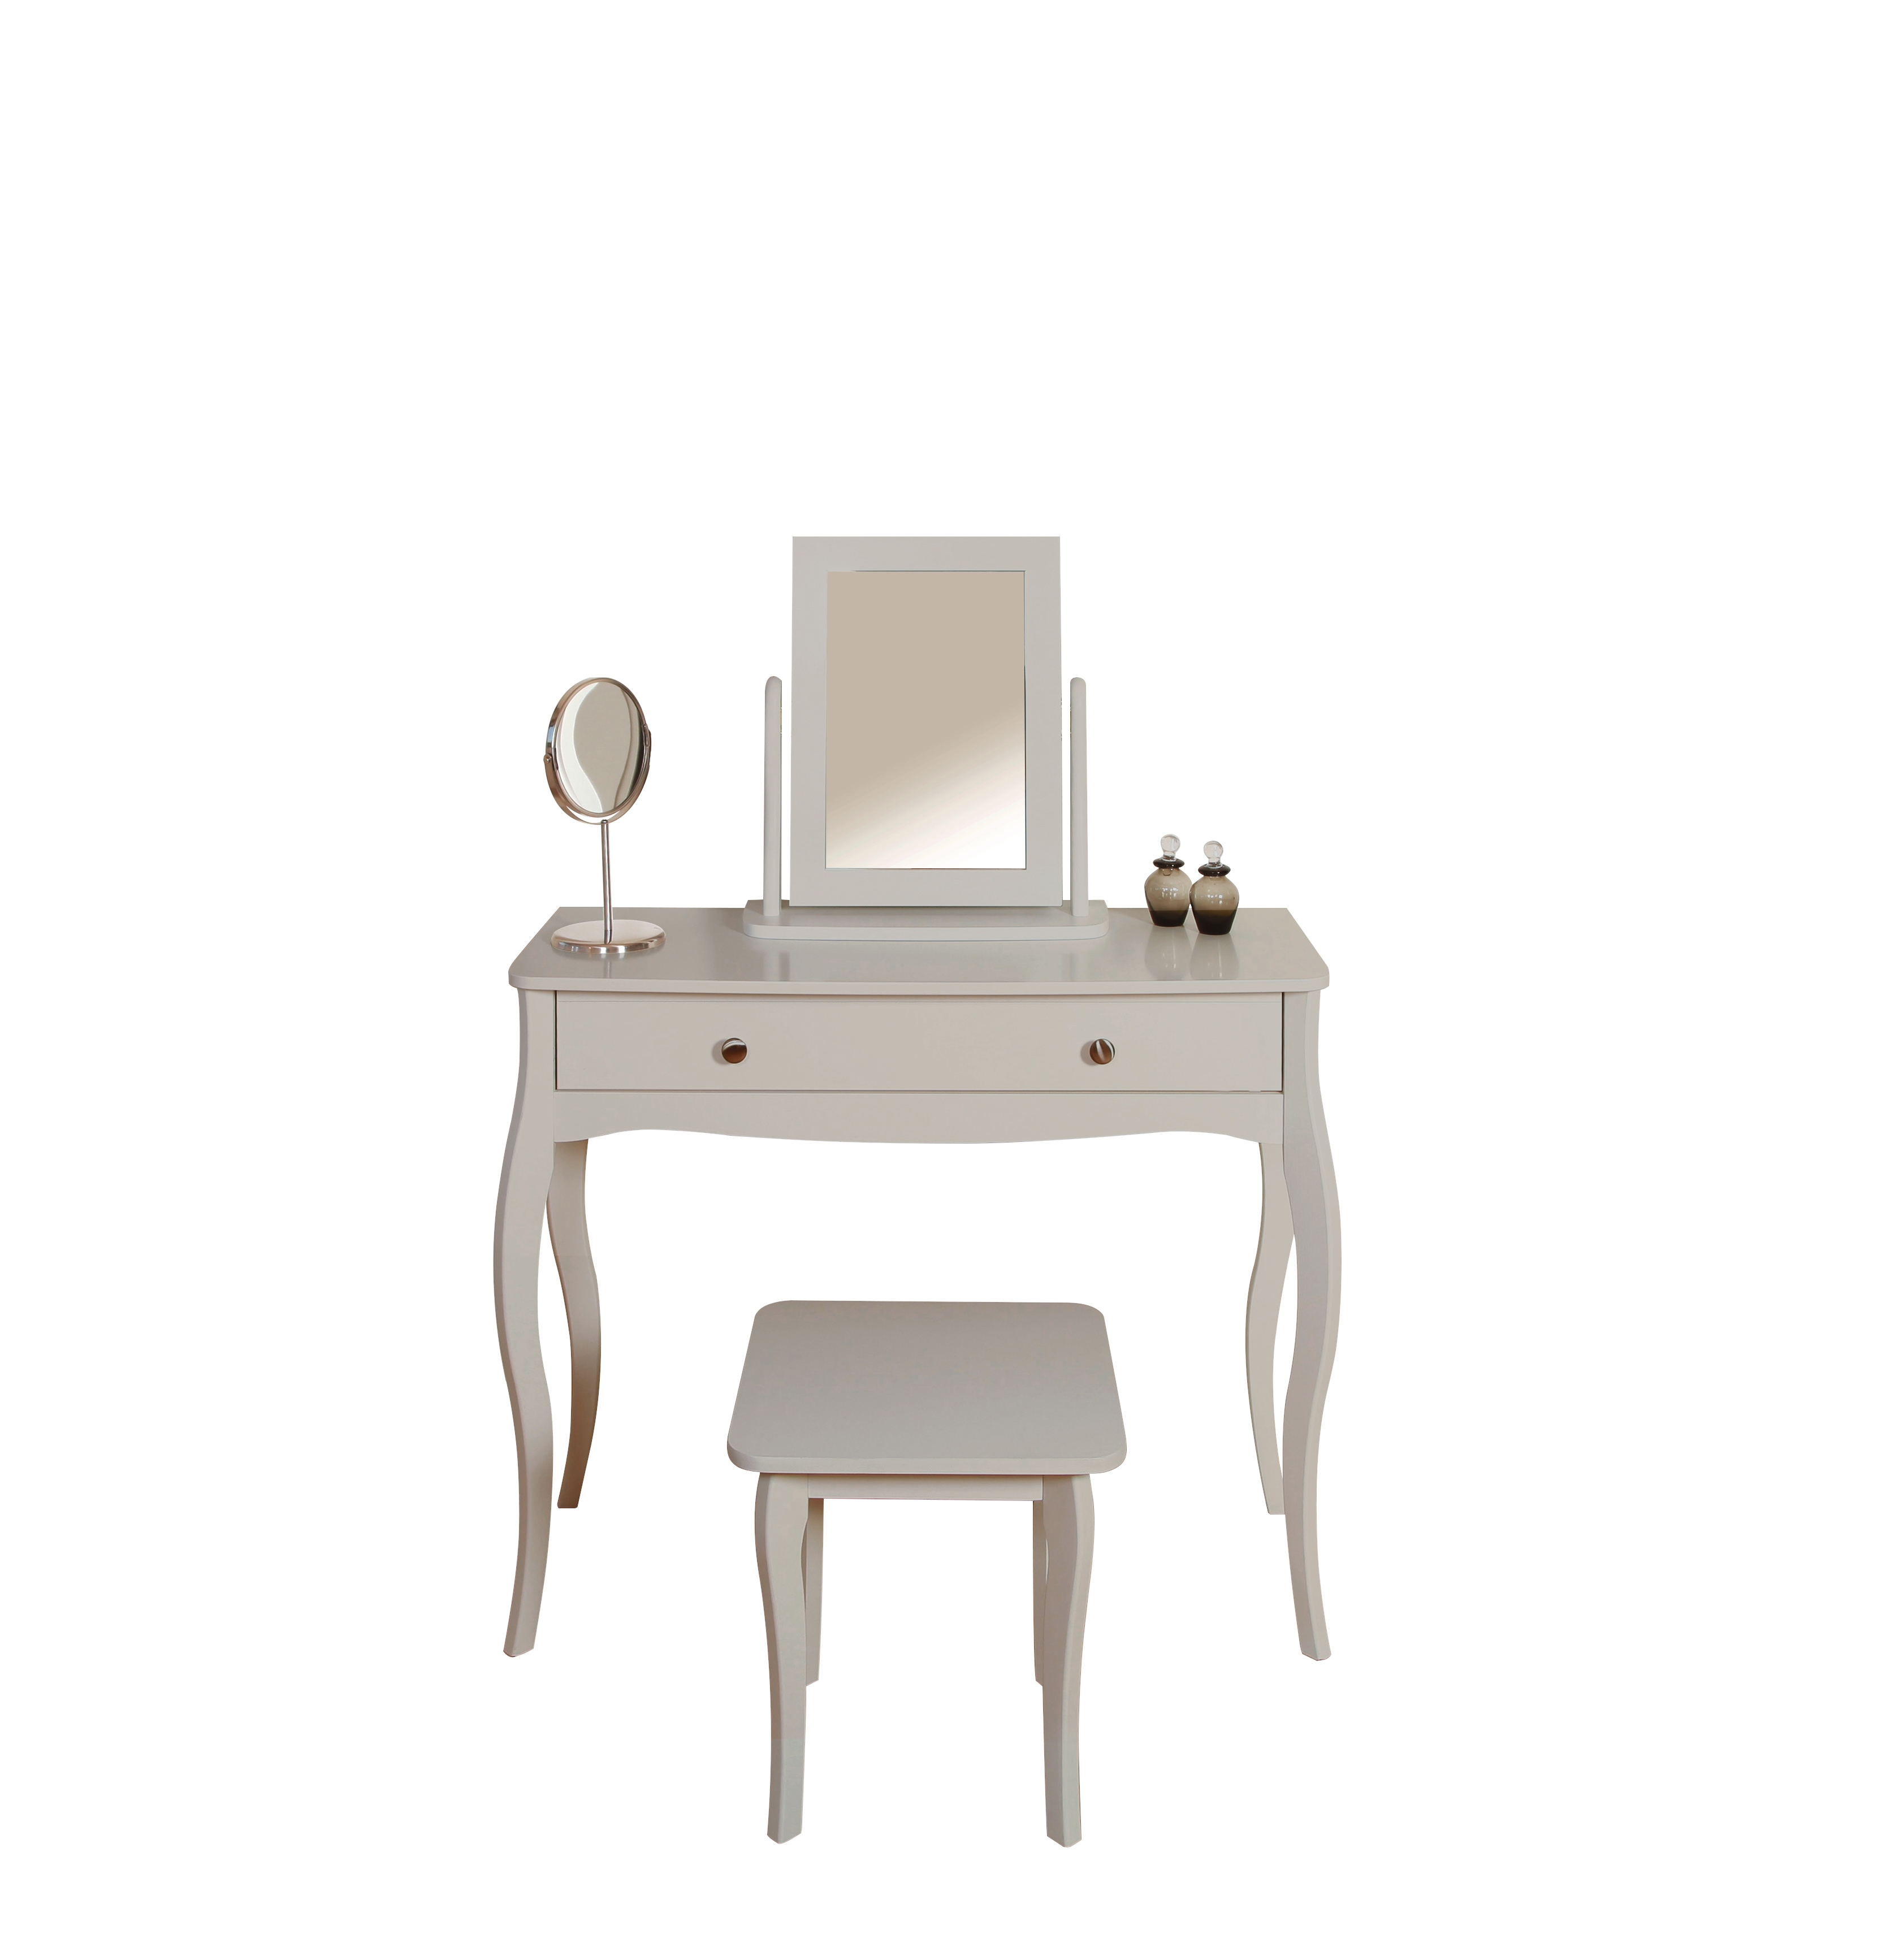 Coiffeuse Barroco Avec Tabouret Gris Commodes Chiffonniers